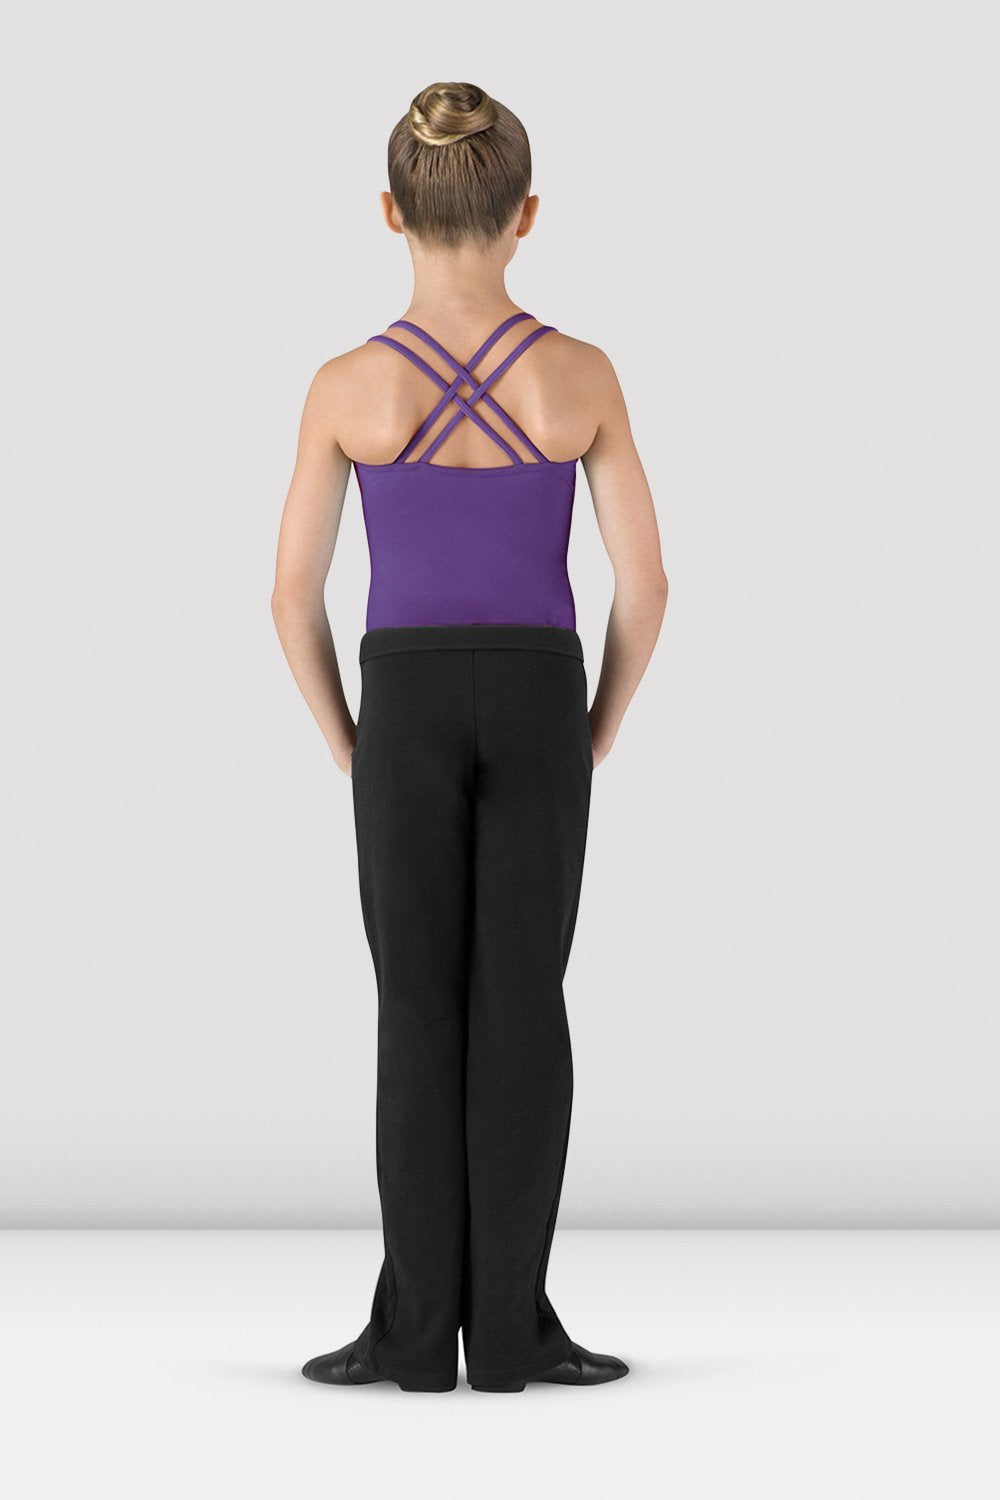 Black Bloch Girls V Front Boot Leg Jazz Pant on female model feet in first position with arms in bra bas facing back